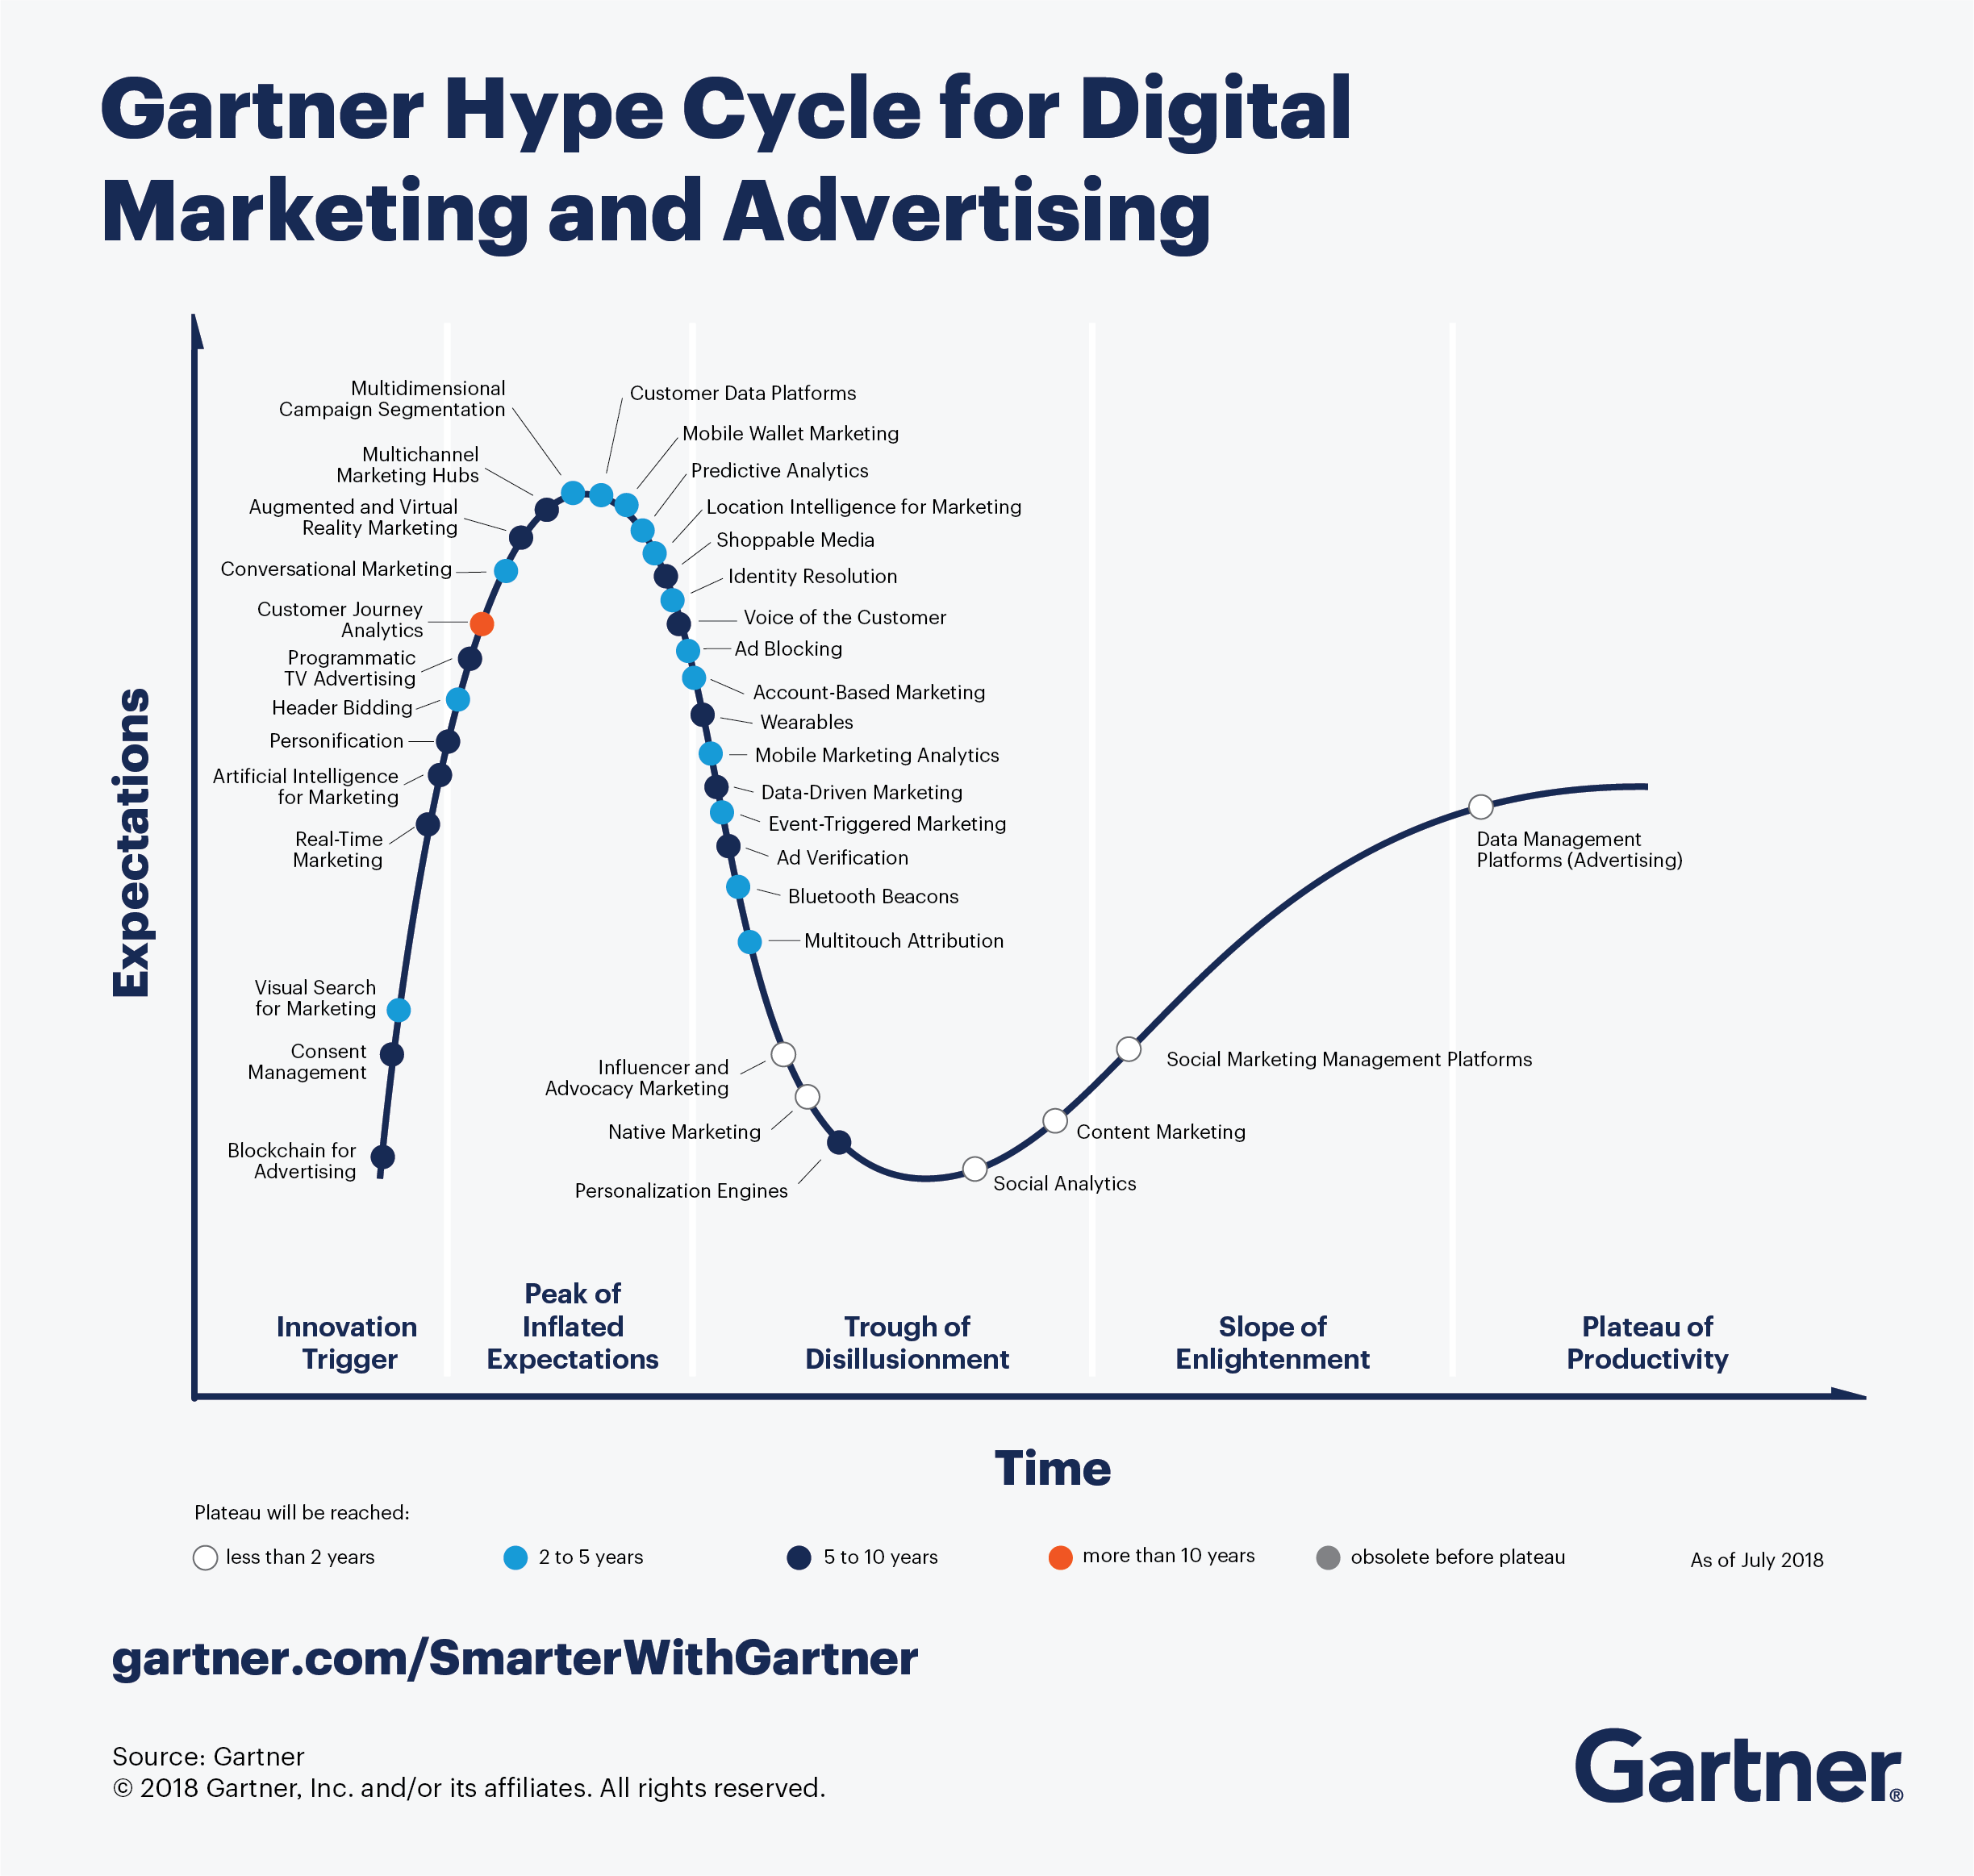 Gartner Hype Cycle for Digital Marketing and Advertising